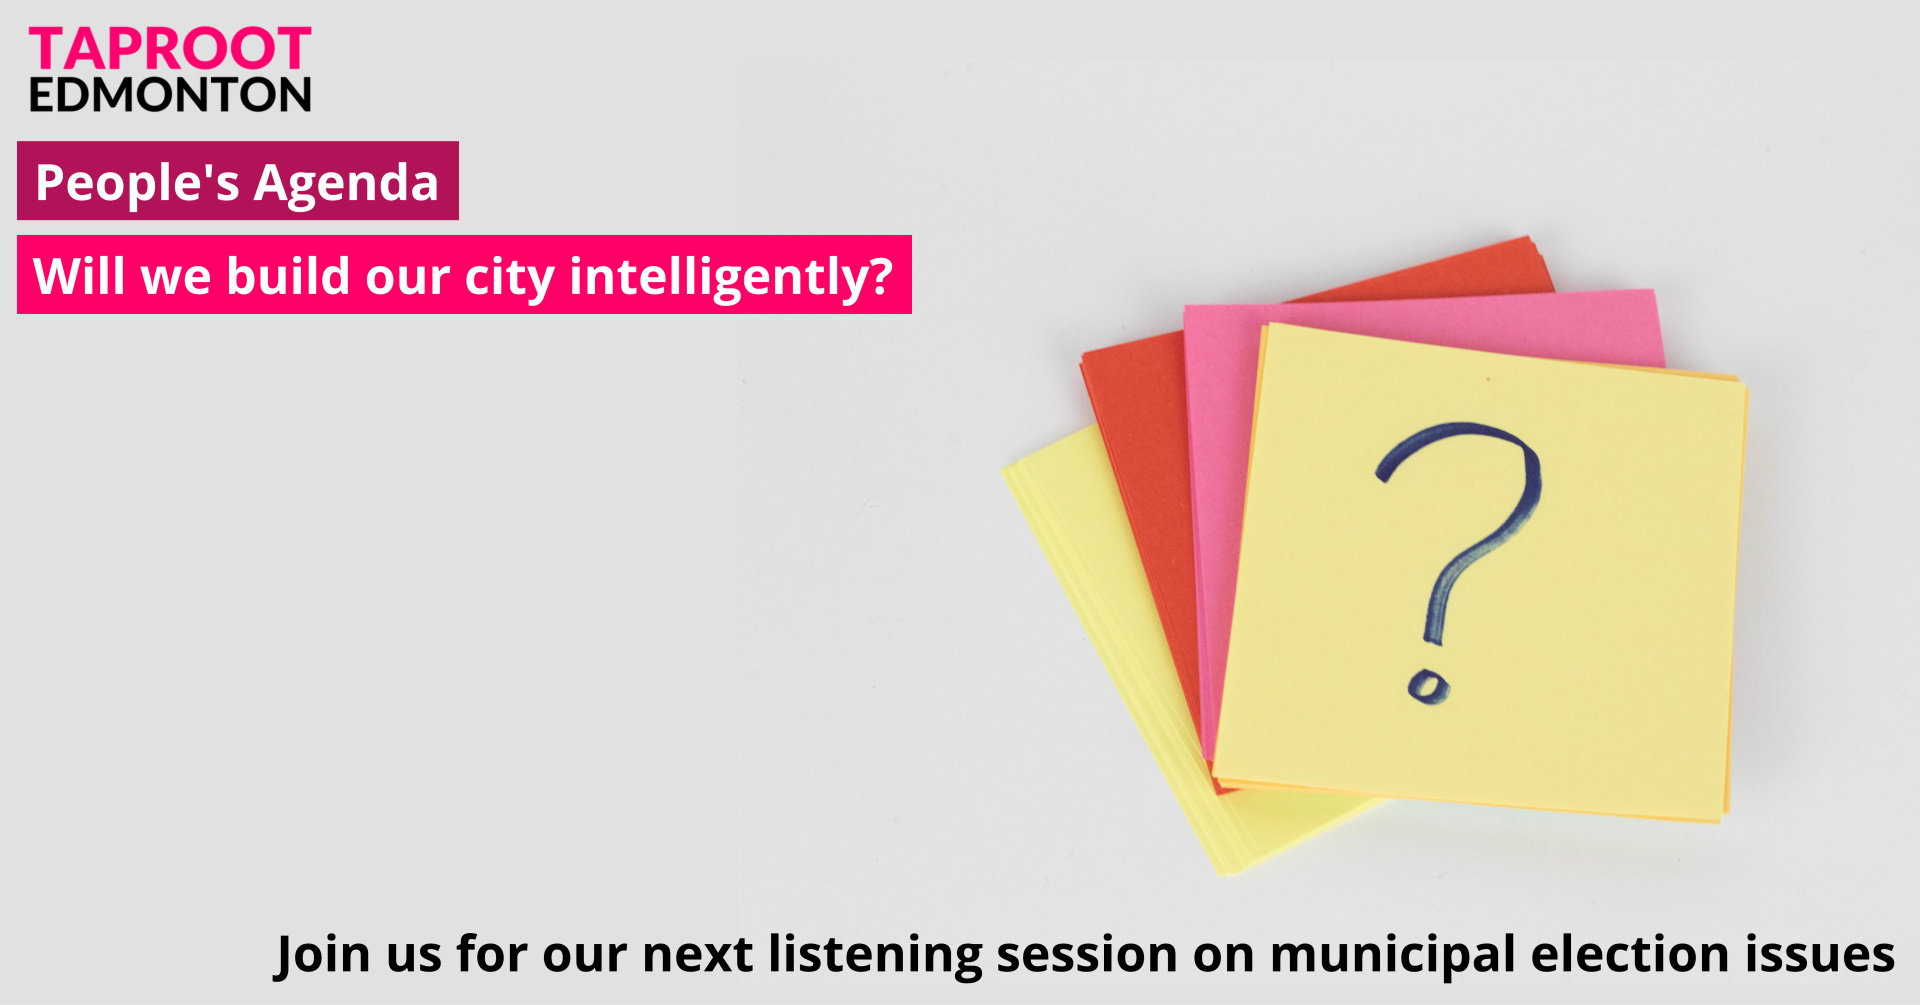 Promotional image for People's Agenda listening session on city-building